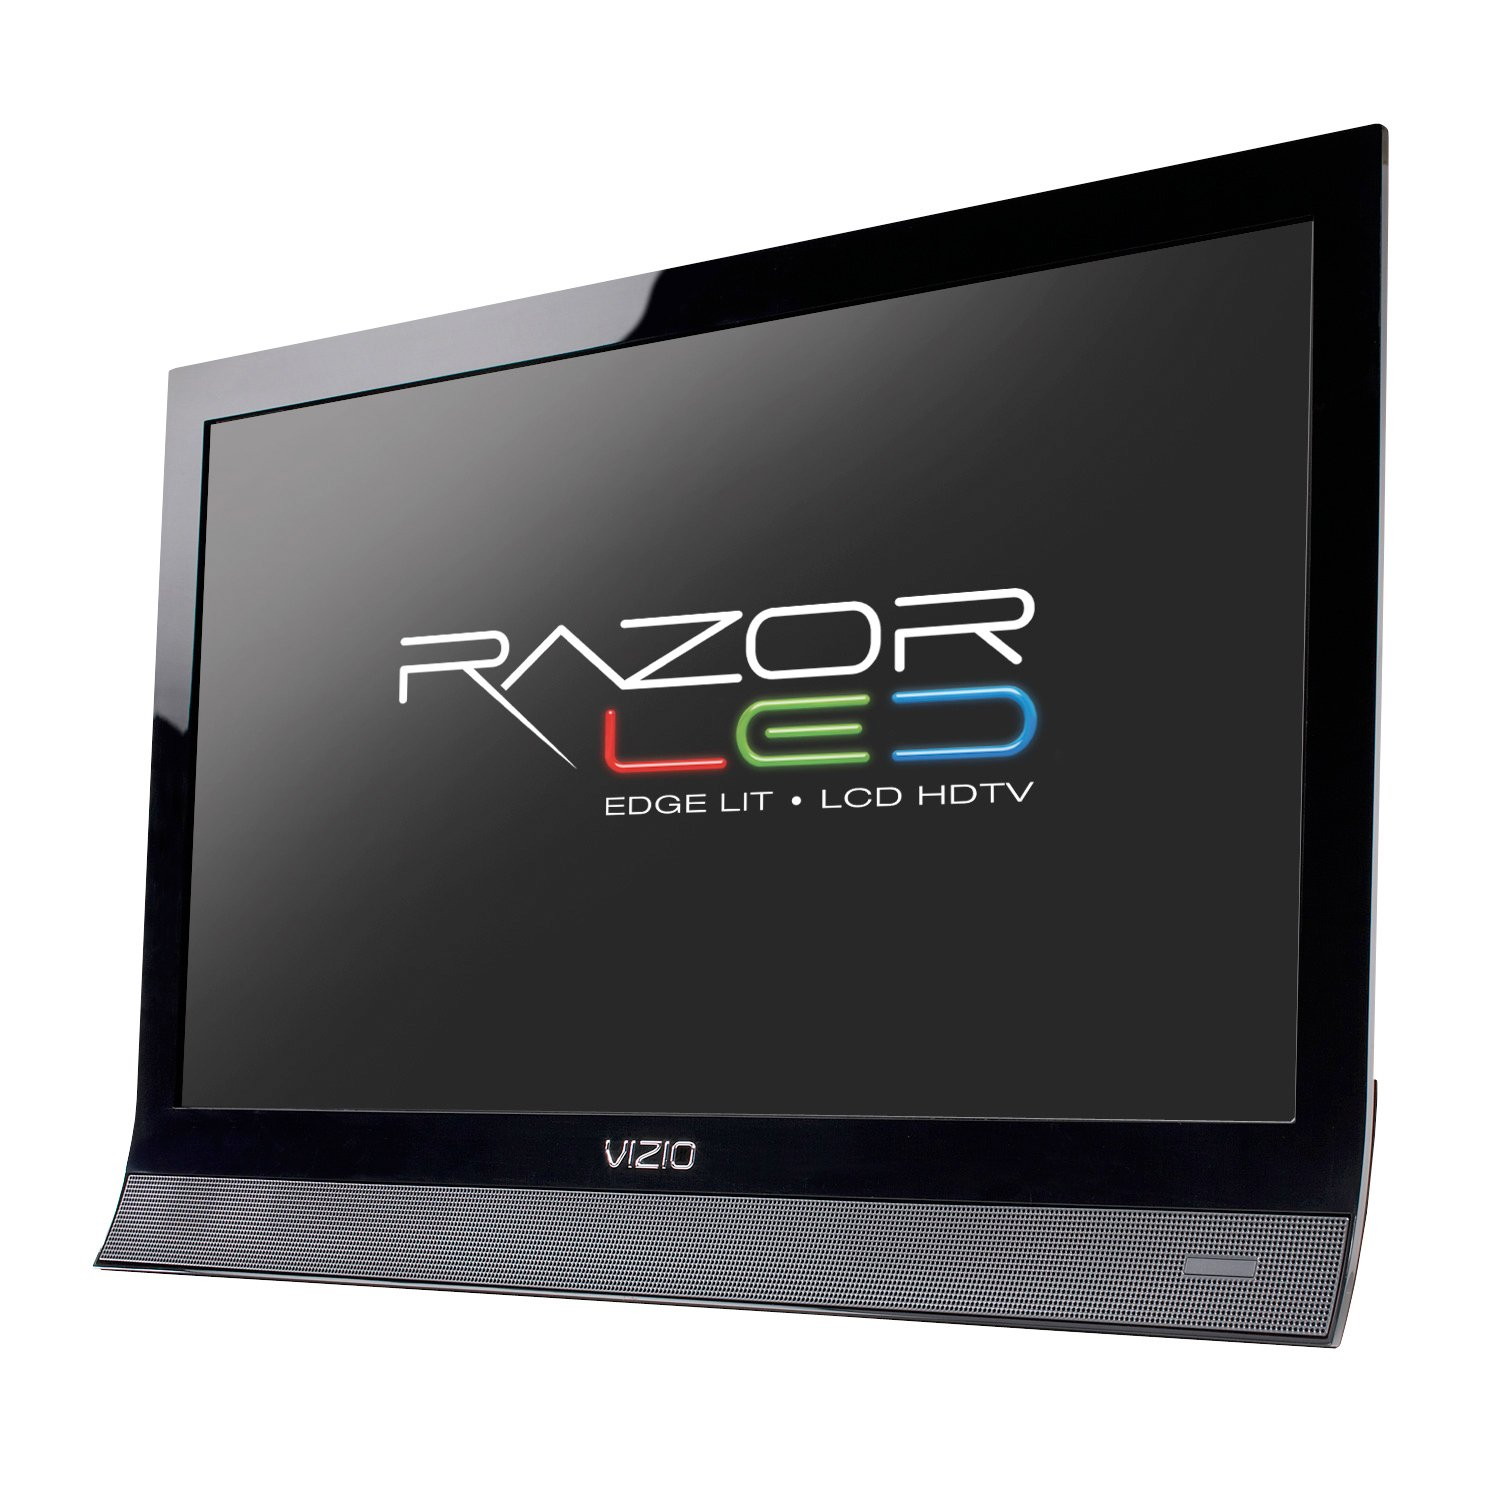 vizio tv price. Amazon.com: VIZIO E190VA 19-Inch Class Edge Lit Razor LED LCD HDTV: Electronics Vizio Tv Price T